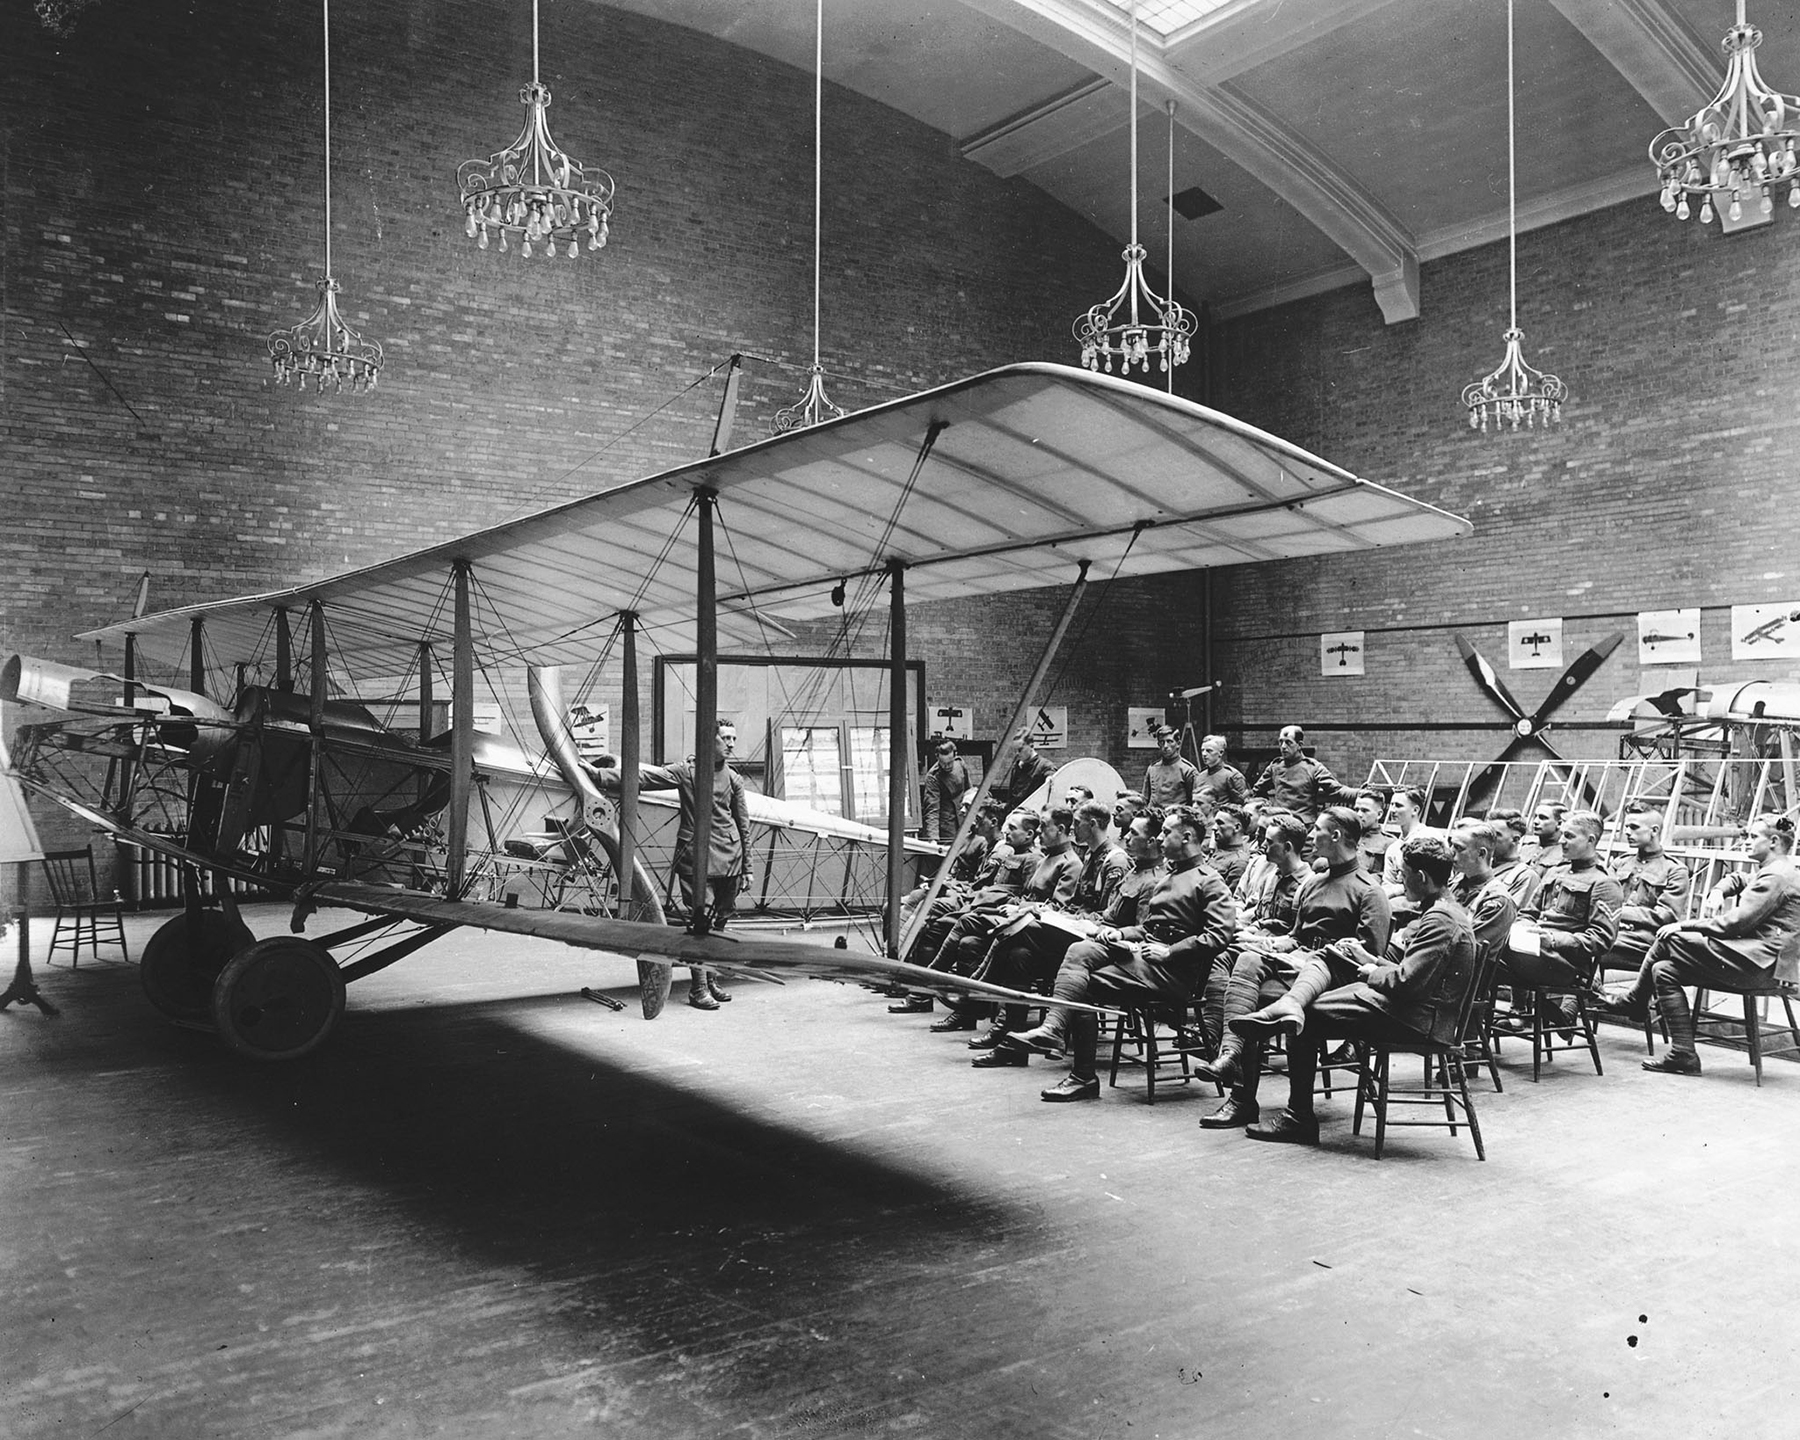 At the School of Aviation in Toronto, Ontario, Royal Flying Corps Canada students attend a lecture on aircraft rigging. DND Archives, RE-19062-40